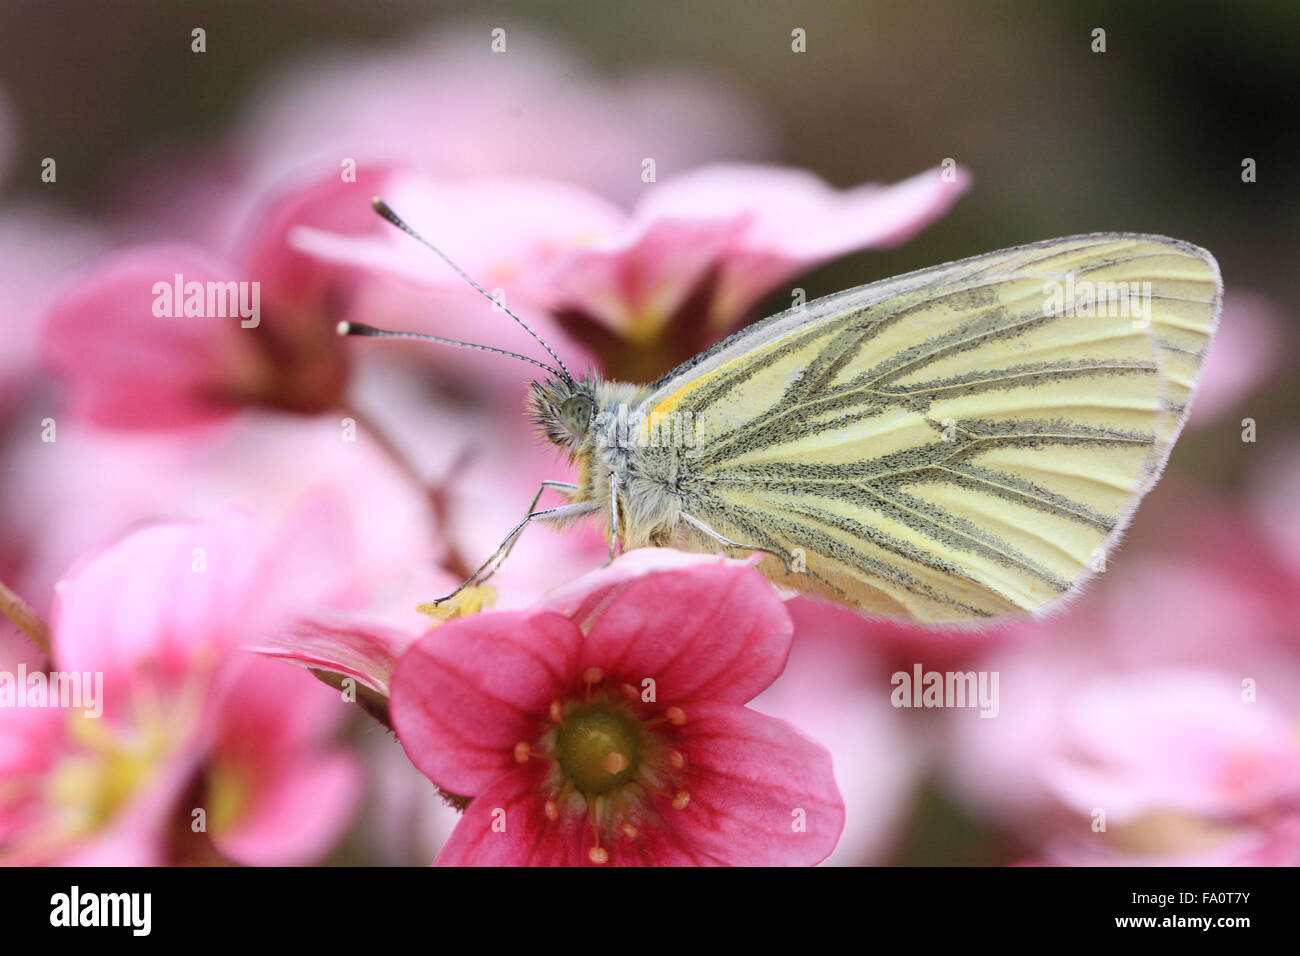 Underside of Green-veined white Pieris napi butterfly on Saxifrage flower - Stock Image